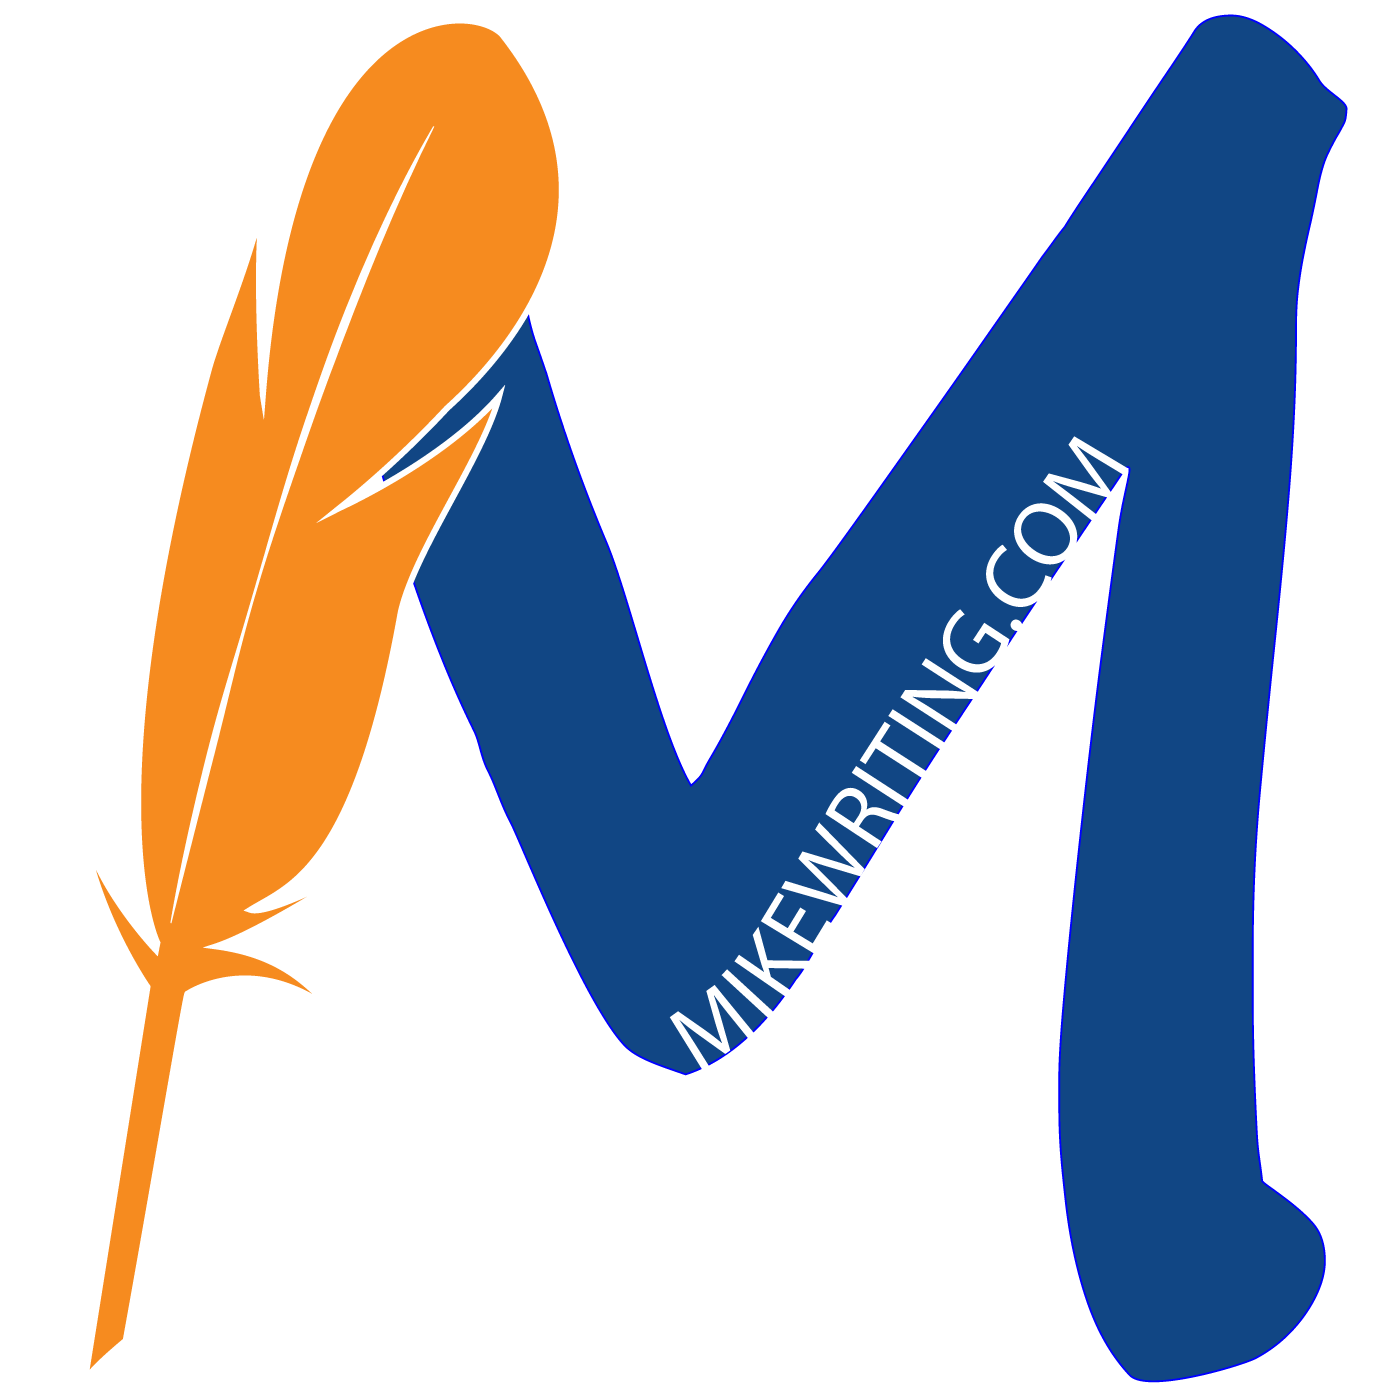 M Quill -- MikeWriting.com